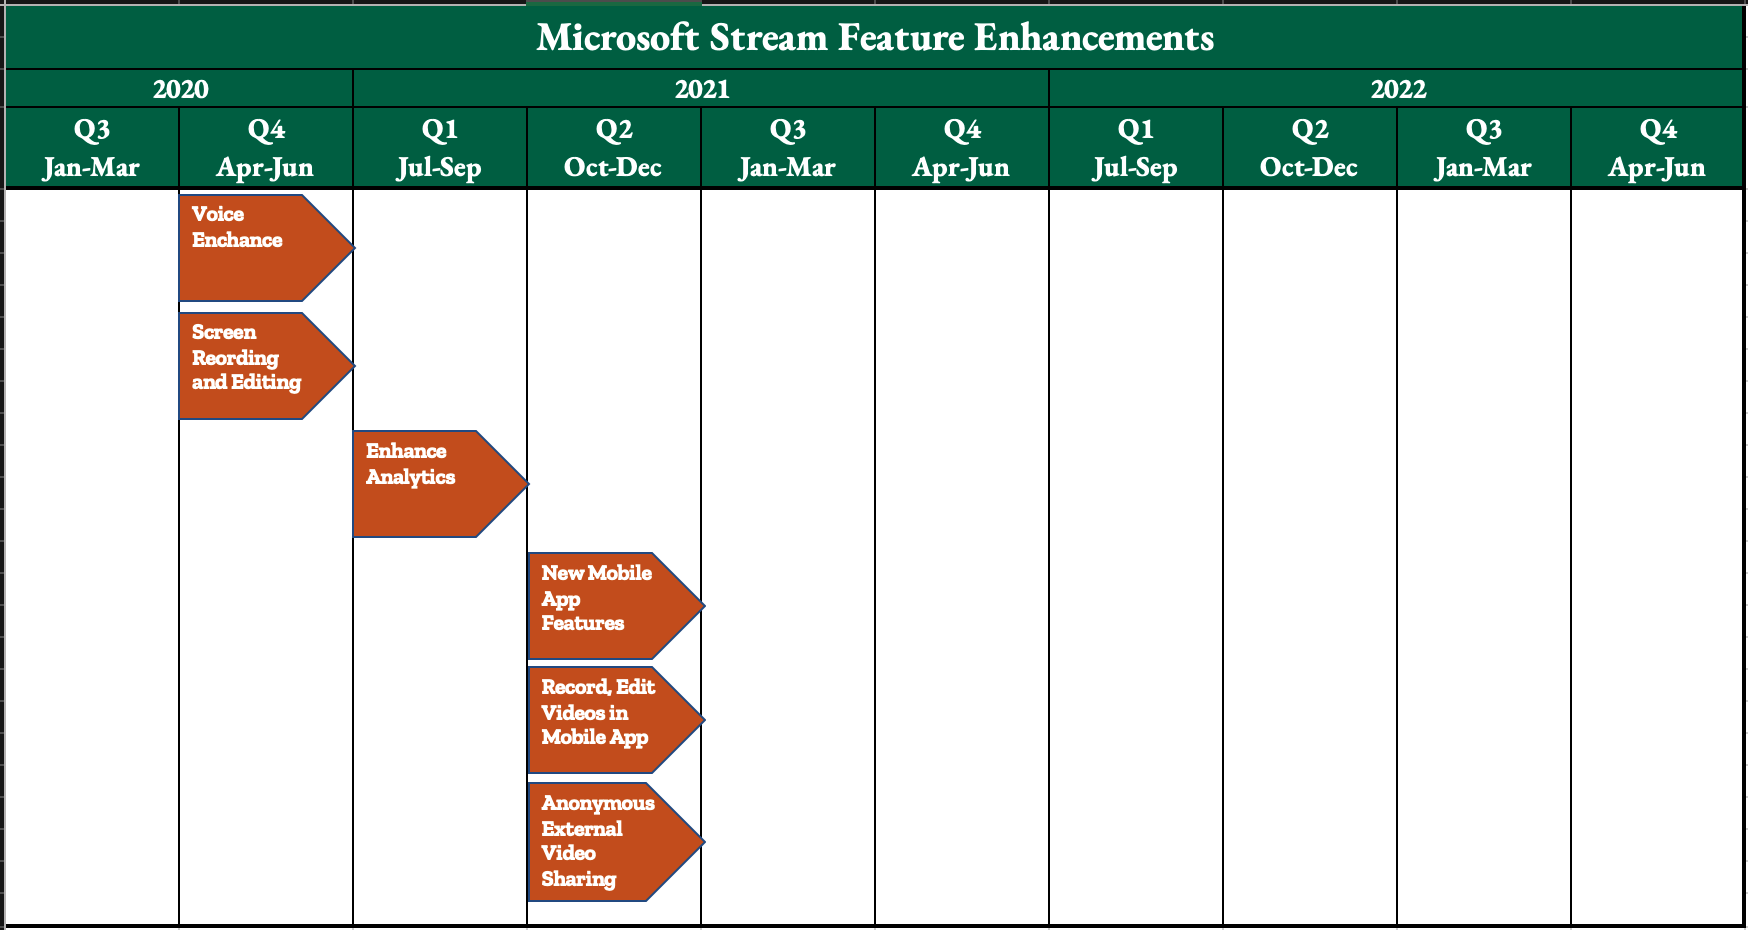 Microsoft Stream Video Roadmap FY20